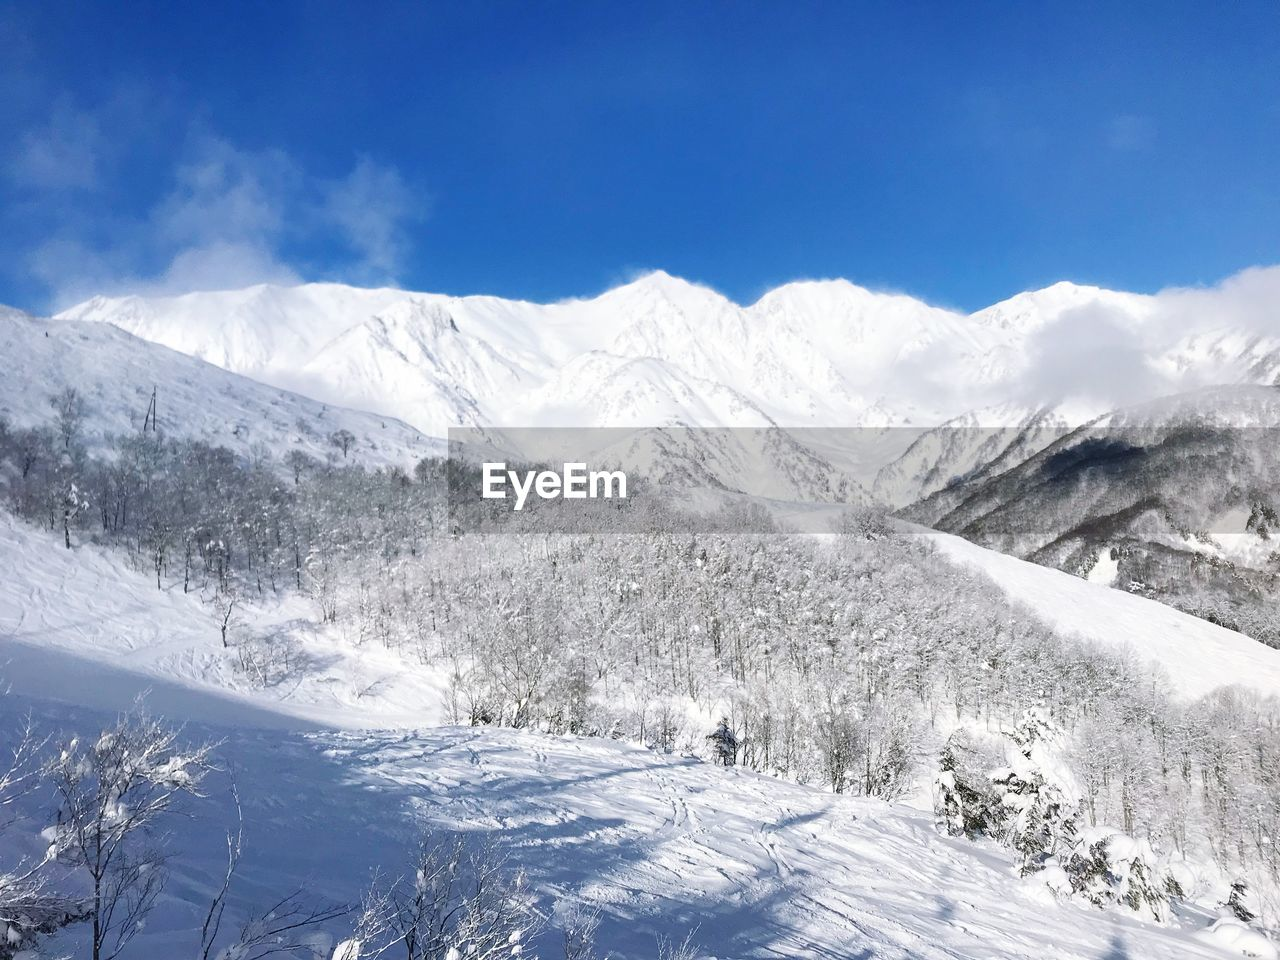 snow, mountain, nature, winter, beauty in nature, outdoors, scenics, landscape, white color, day, cold temperature, tranquil scene, no people, tranquility, sky, blue, tree, range